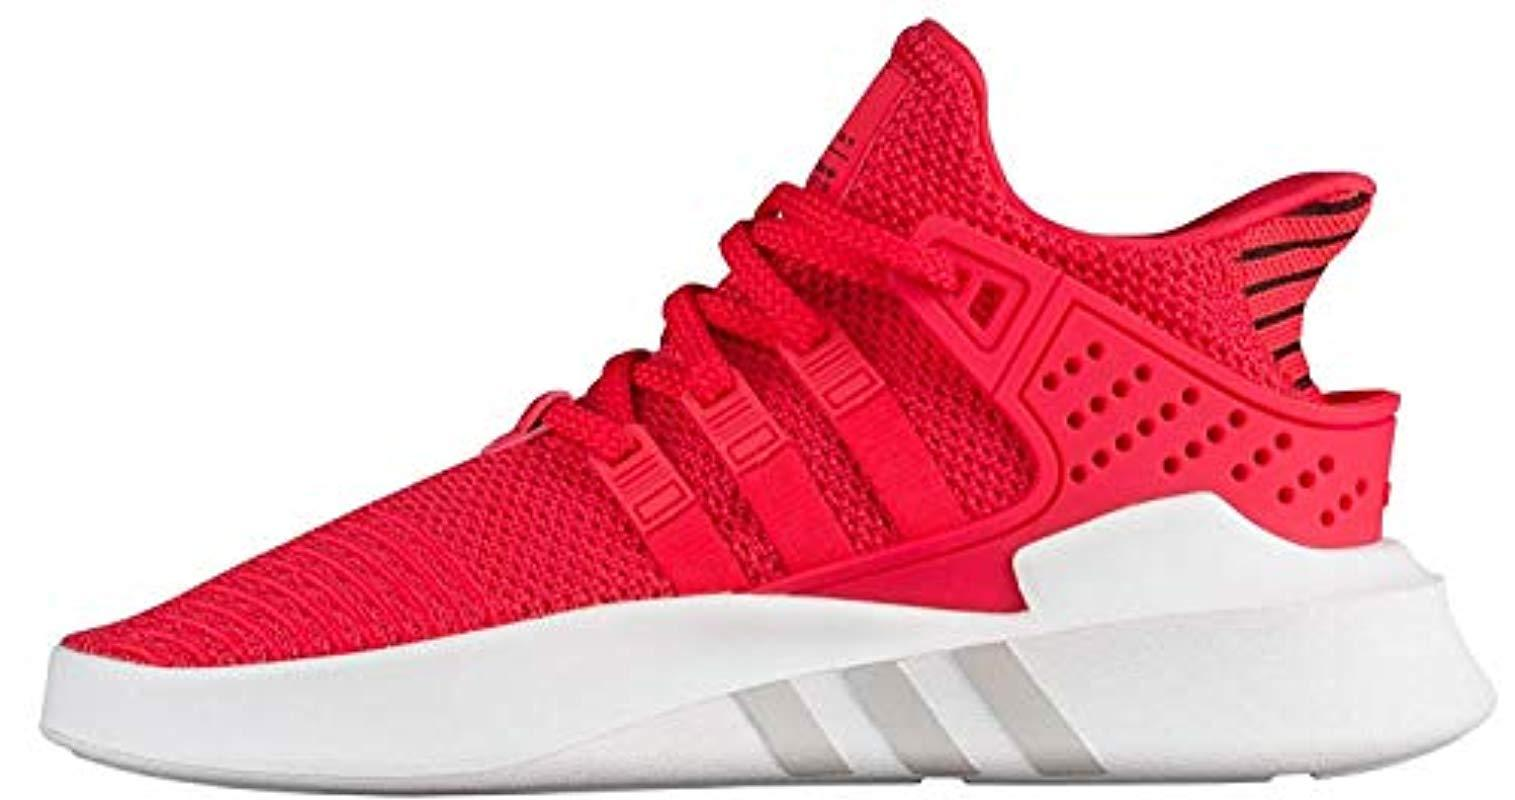 sale retailer 0b626 9d402 Men's Red Eqt Bask Adv S S B22642